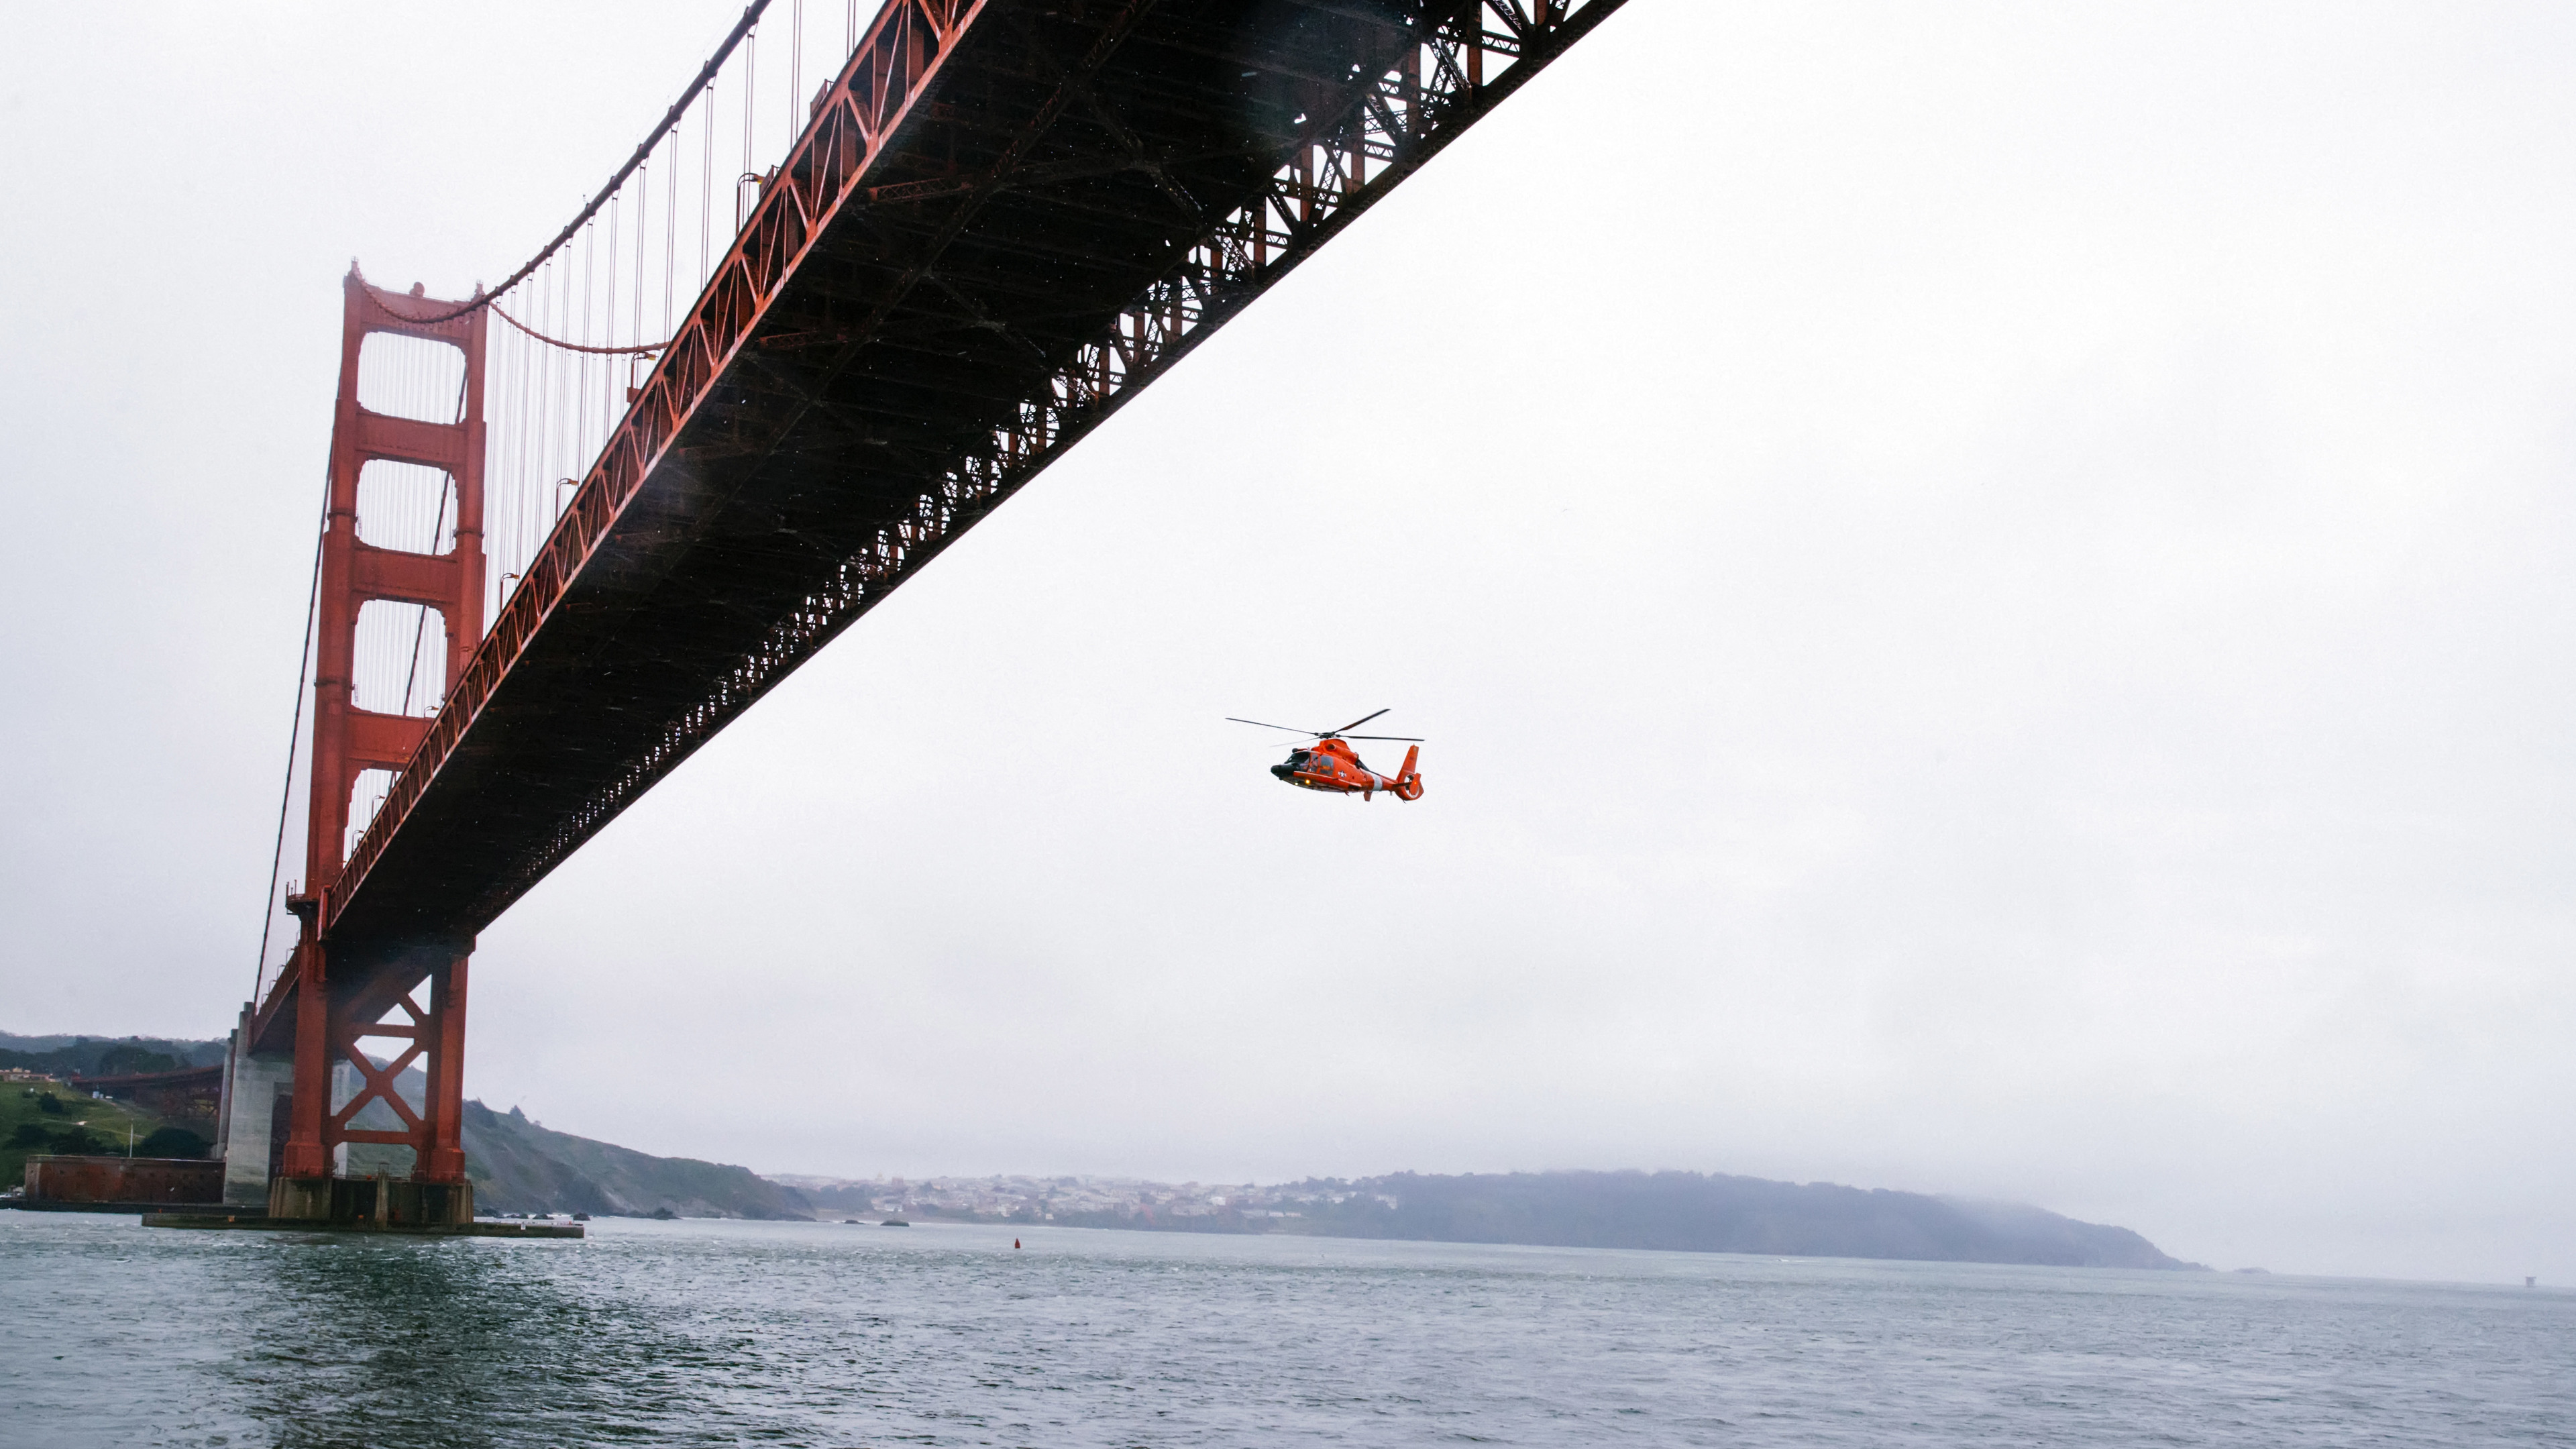 rescue helicopter flying under golden gate bridge 1538069323 - Rescue Helicopter Flying Under Golden Gate Bridge - world wallpapers, san francisco wallpapers, hd-wallpapers, golden gate bridge wallpapers, bridge wallpapers, 4k-wallpapers